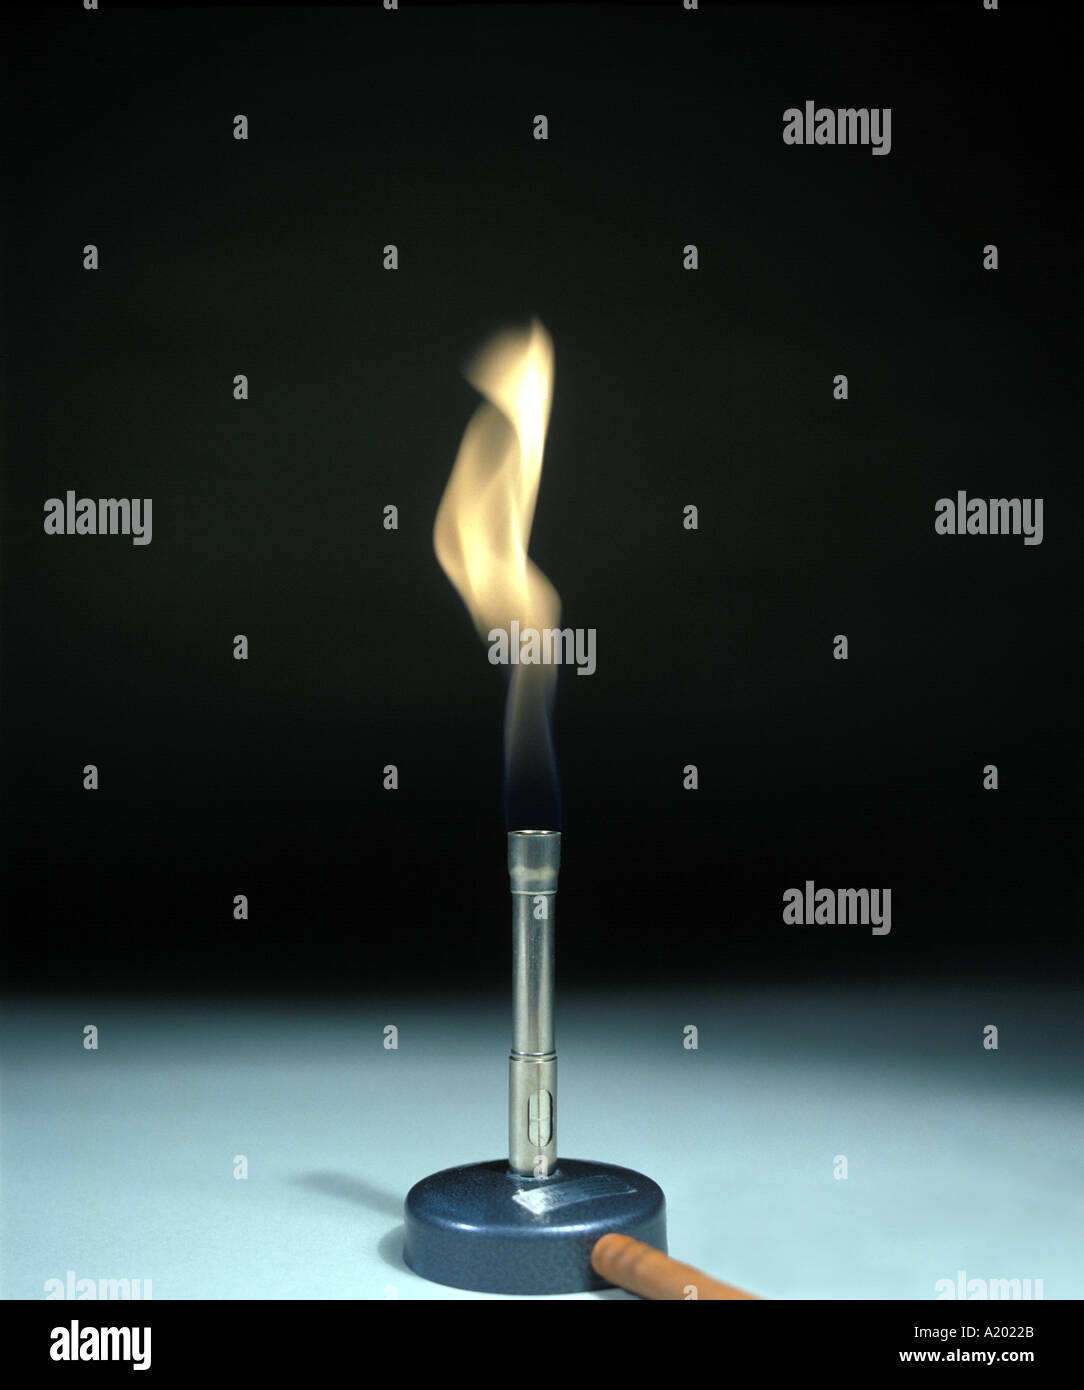 bunsen burner has a sooty yellow flame when the air hole is closed - Stock Image